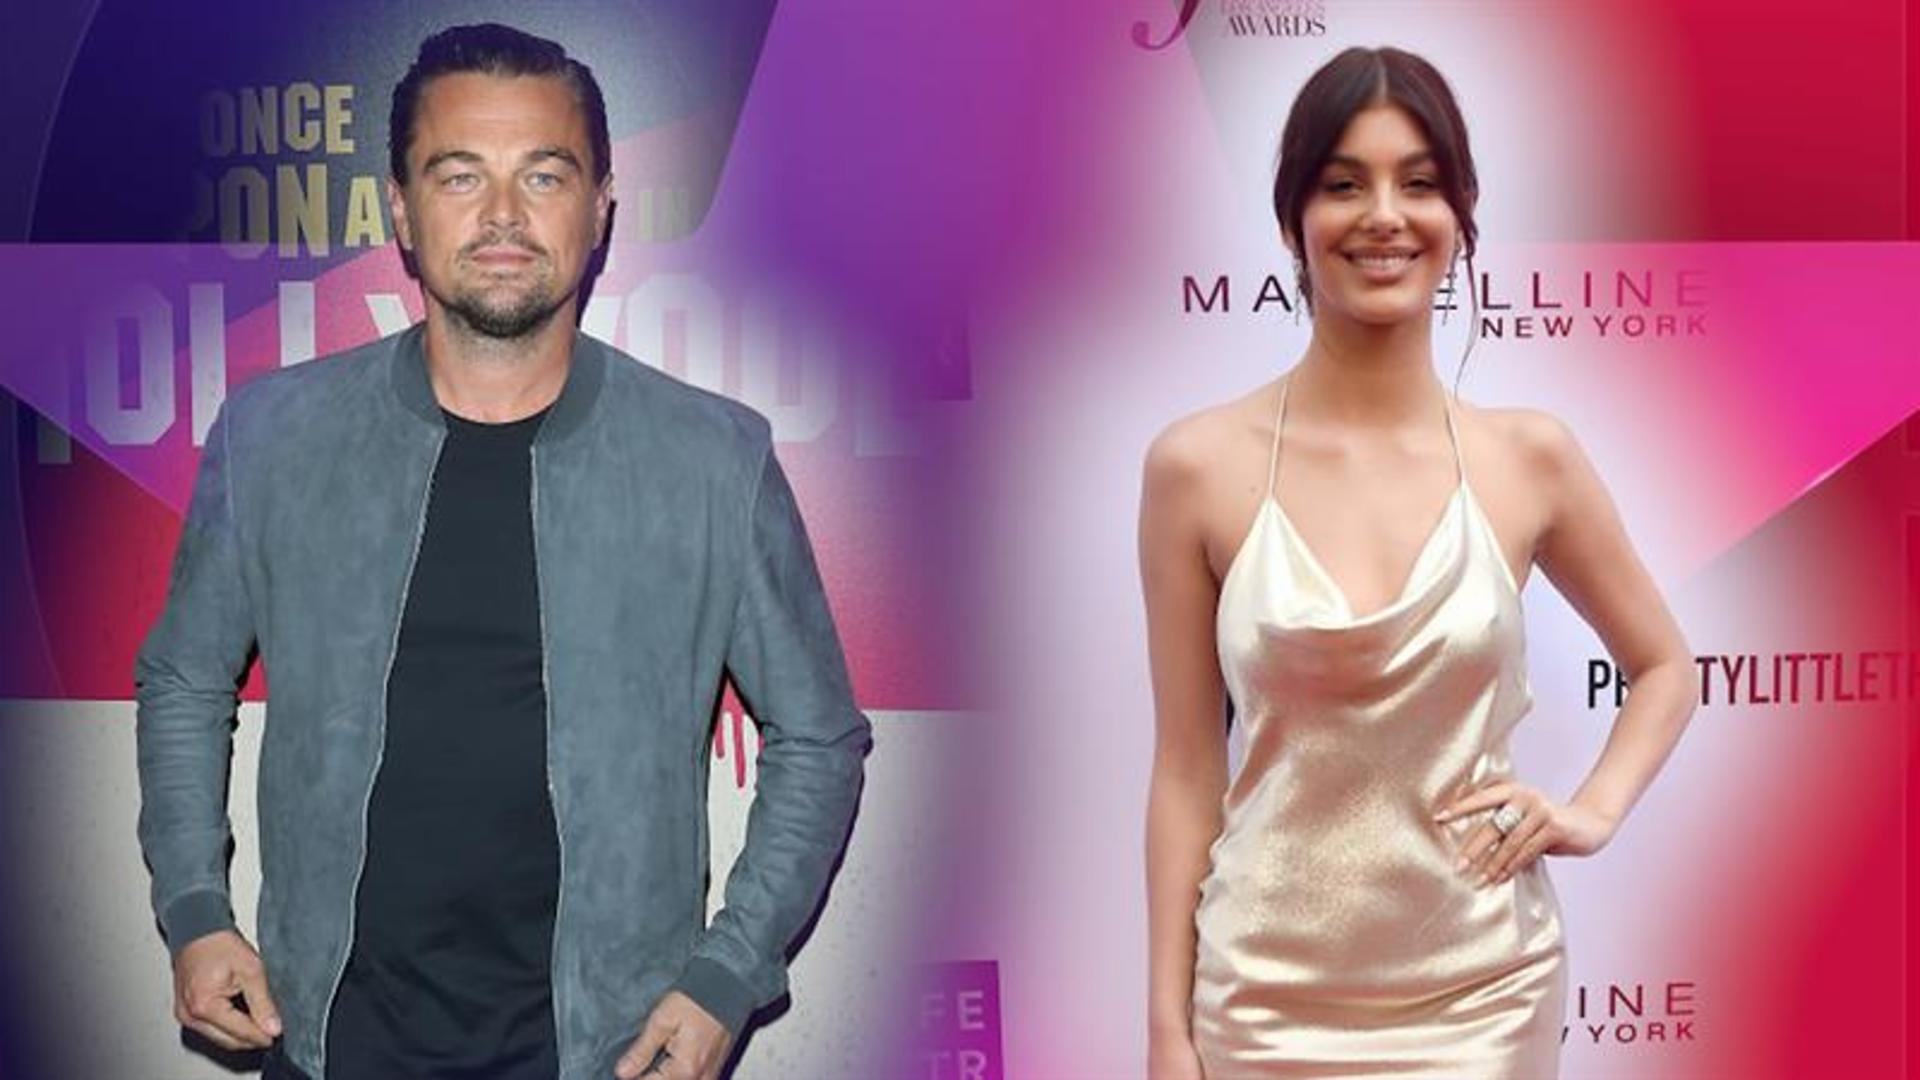 Cannes 2019: Leo DiCaprio and girlfriend Camila Morrone walk red carpet separately